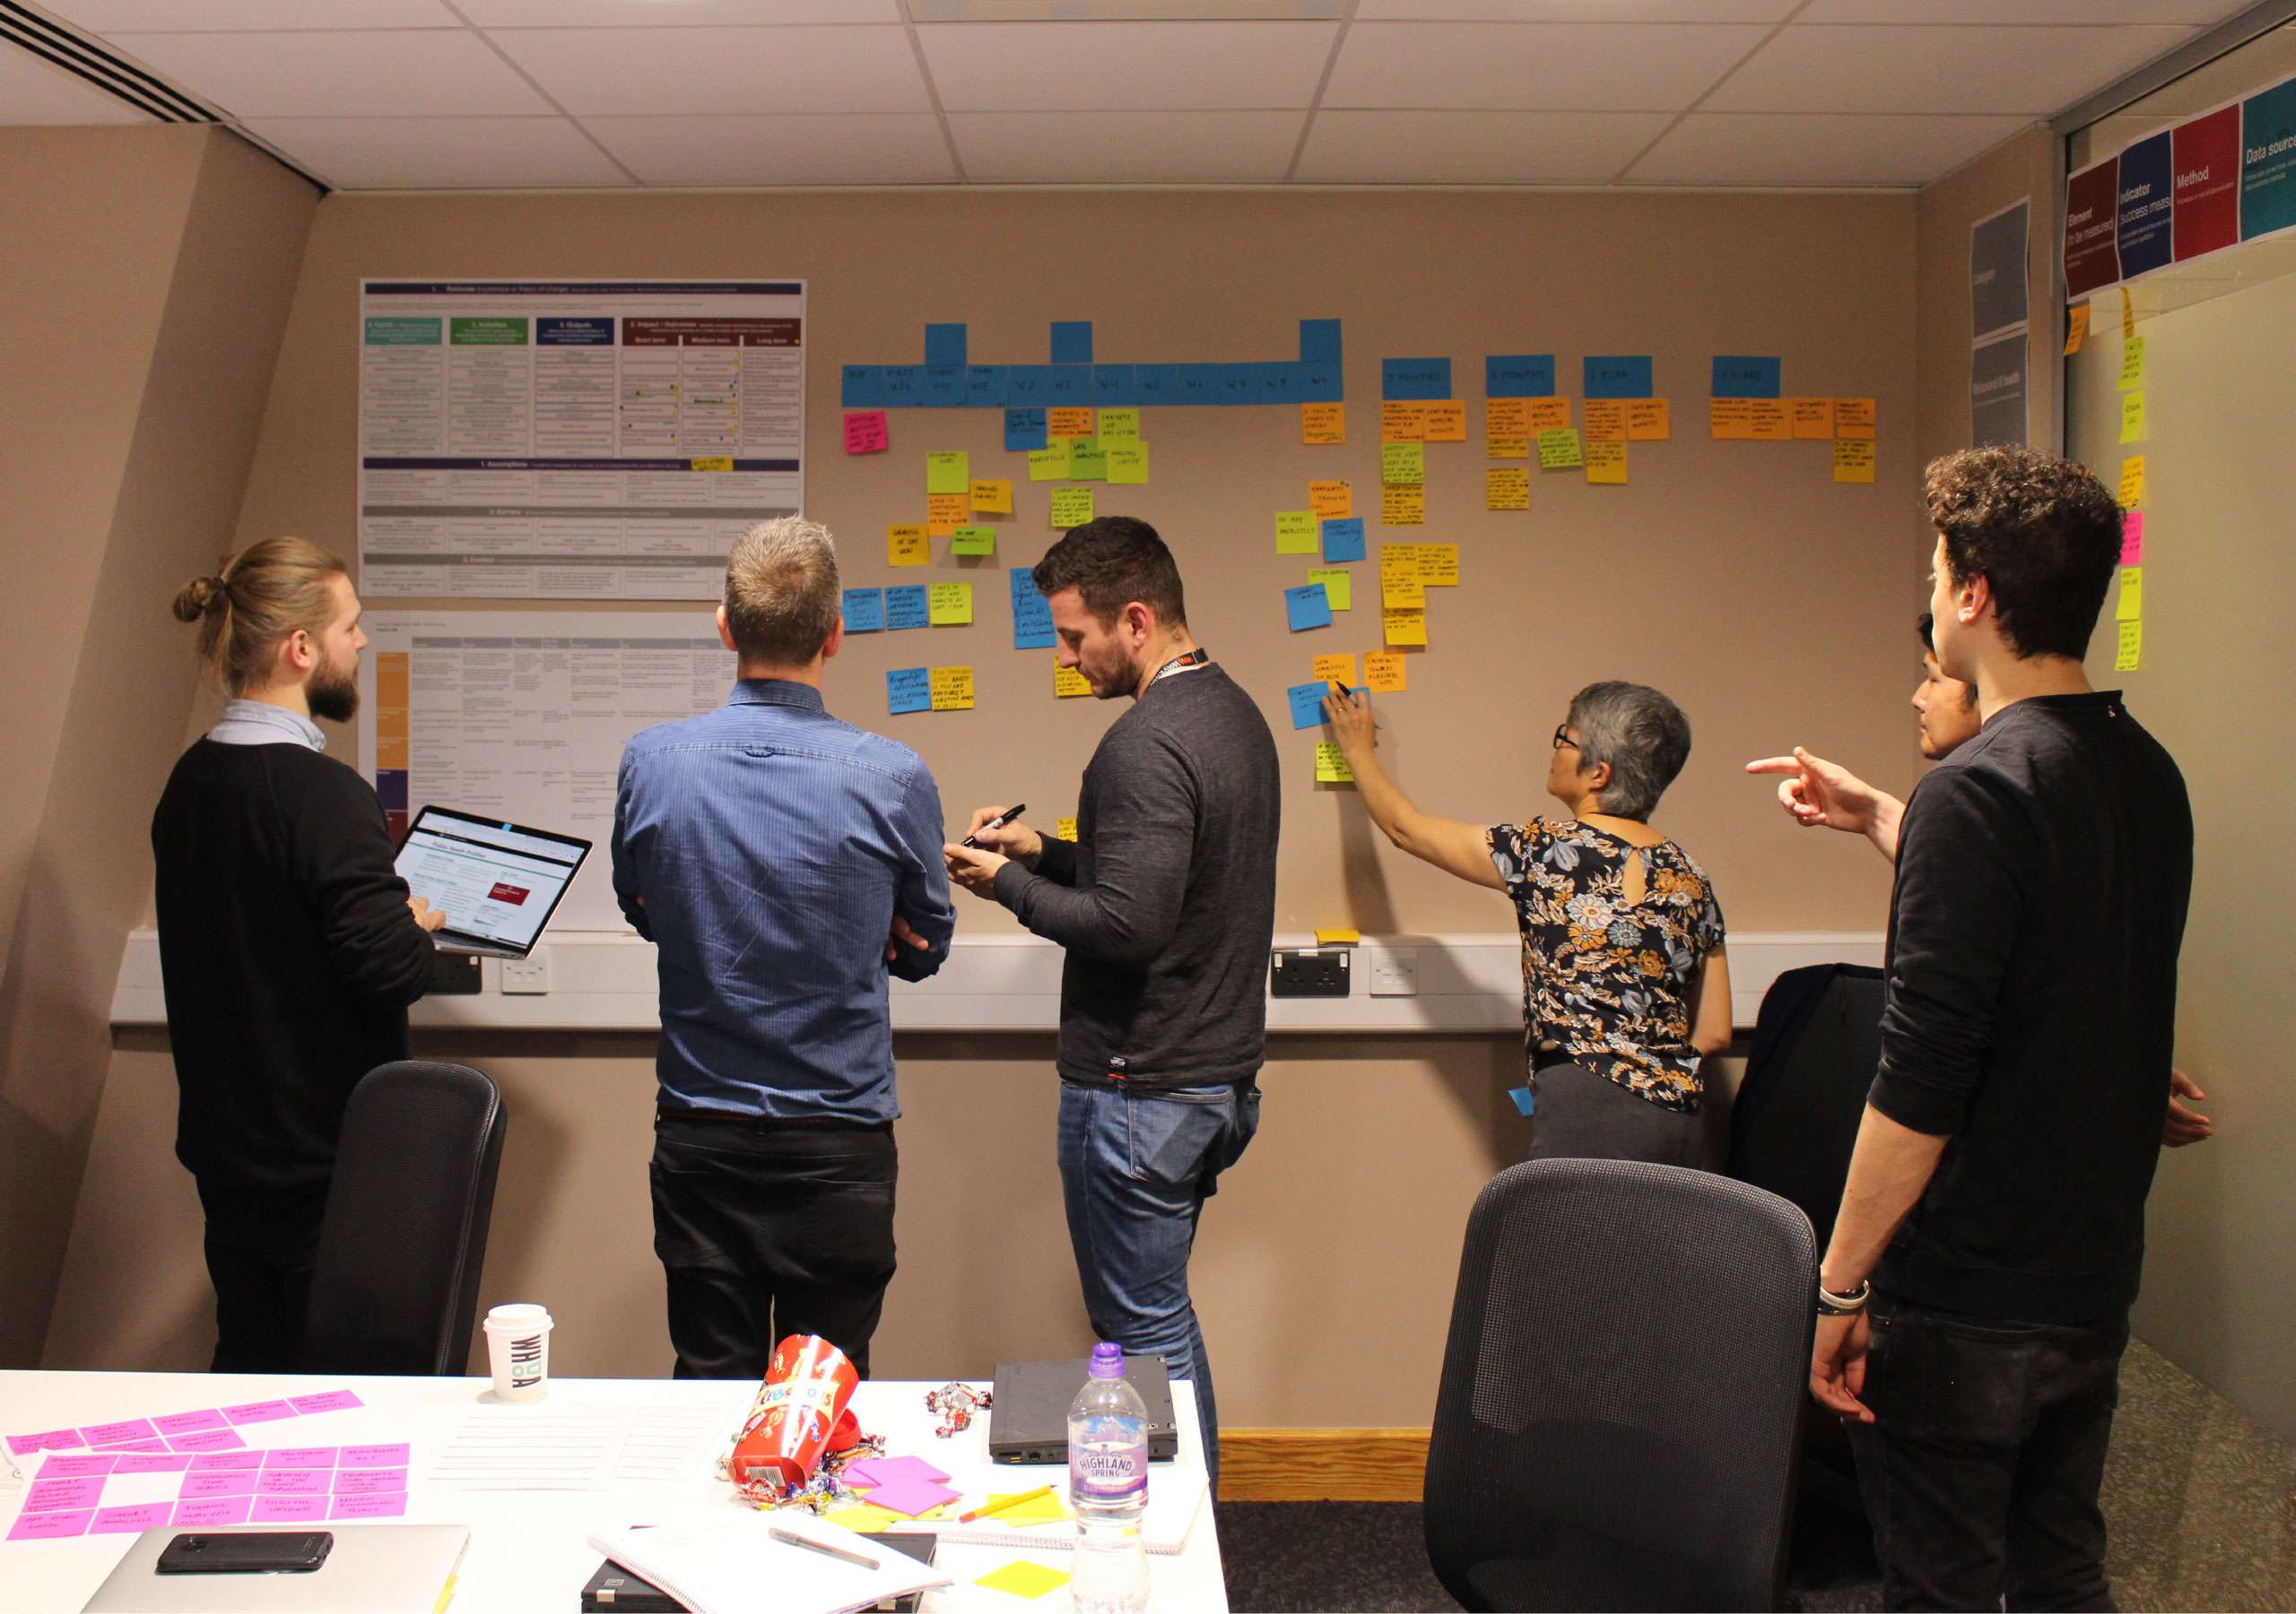 Designing a service to help teams evaluate and prioritise digital health services